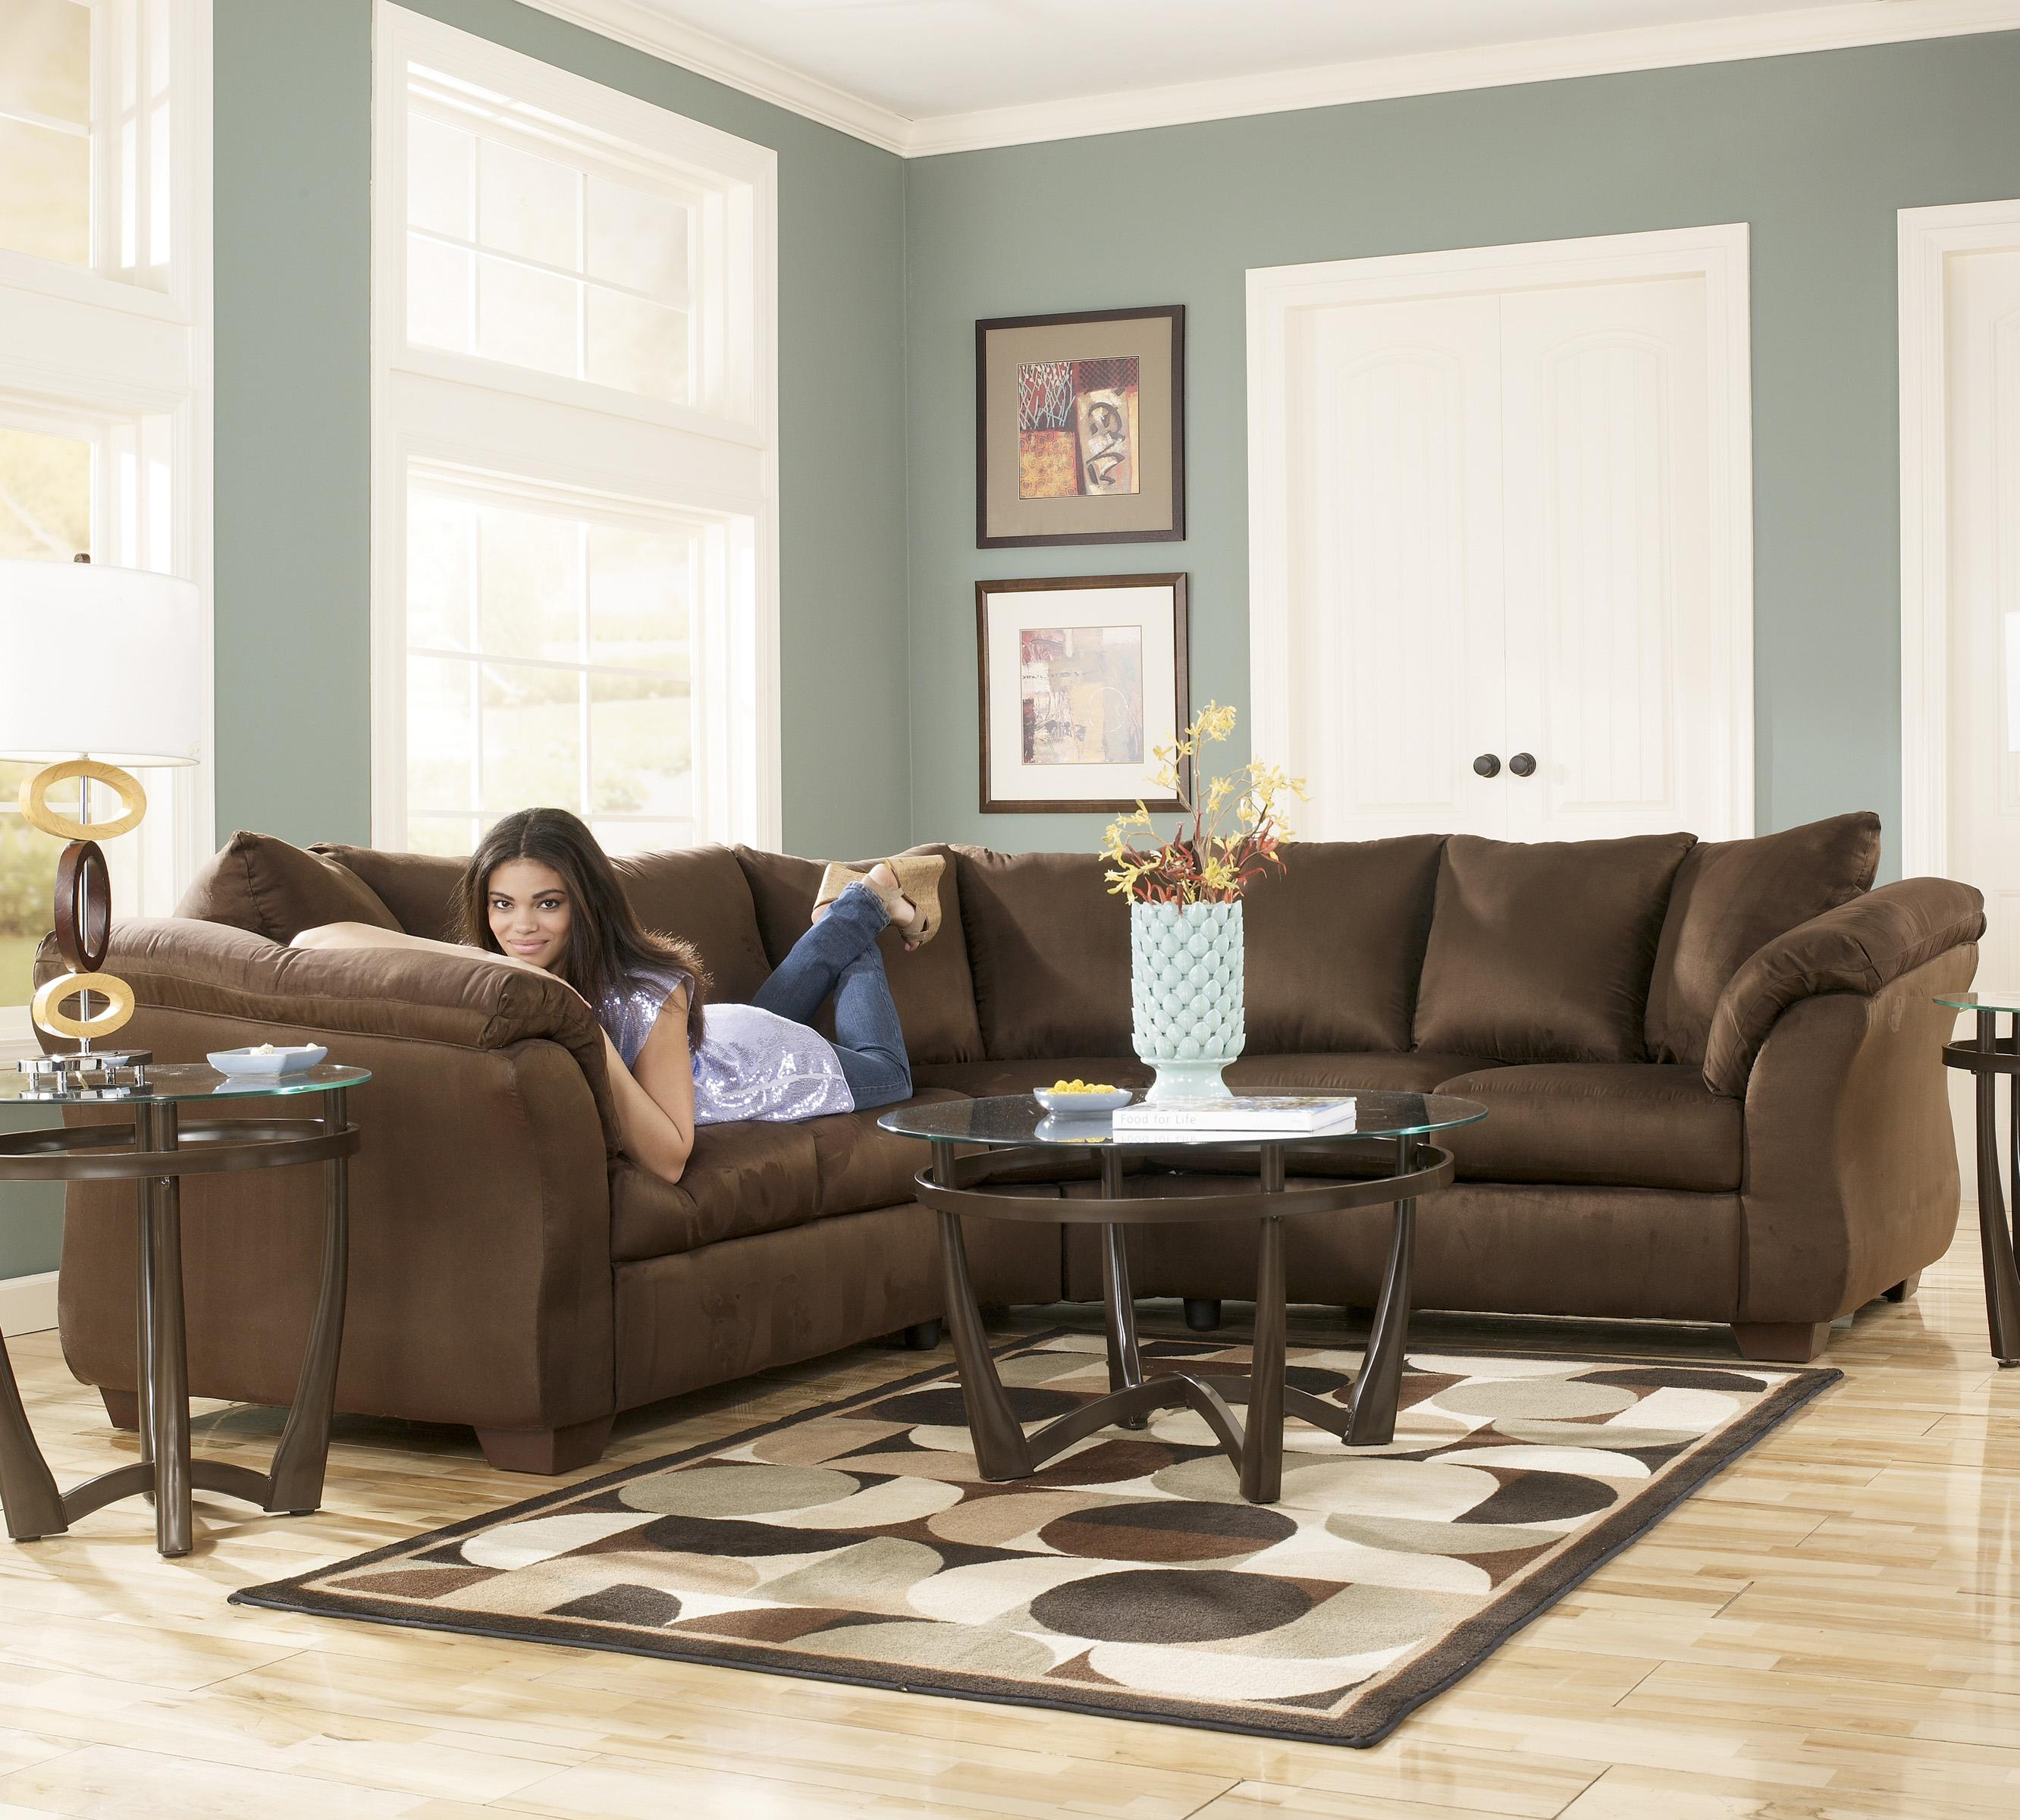 Ordinaire Signature Design By Ashley Darcy   Cafe Contemporary Sectional Sofa With  Sweeping Pillow Arms | Wayside Furniture | Sectional Sofas